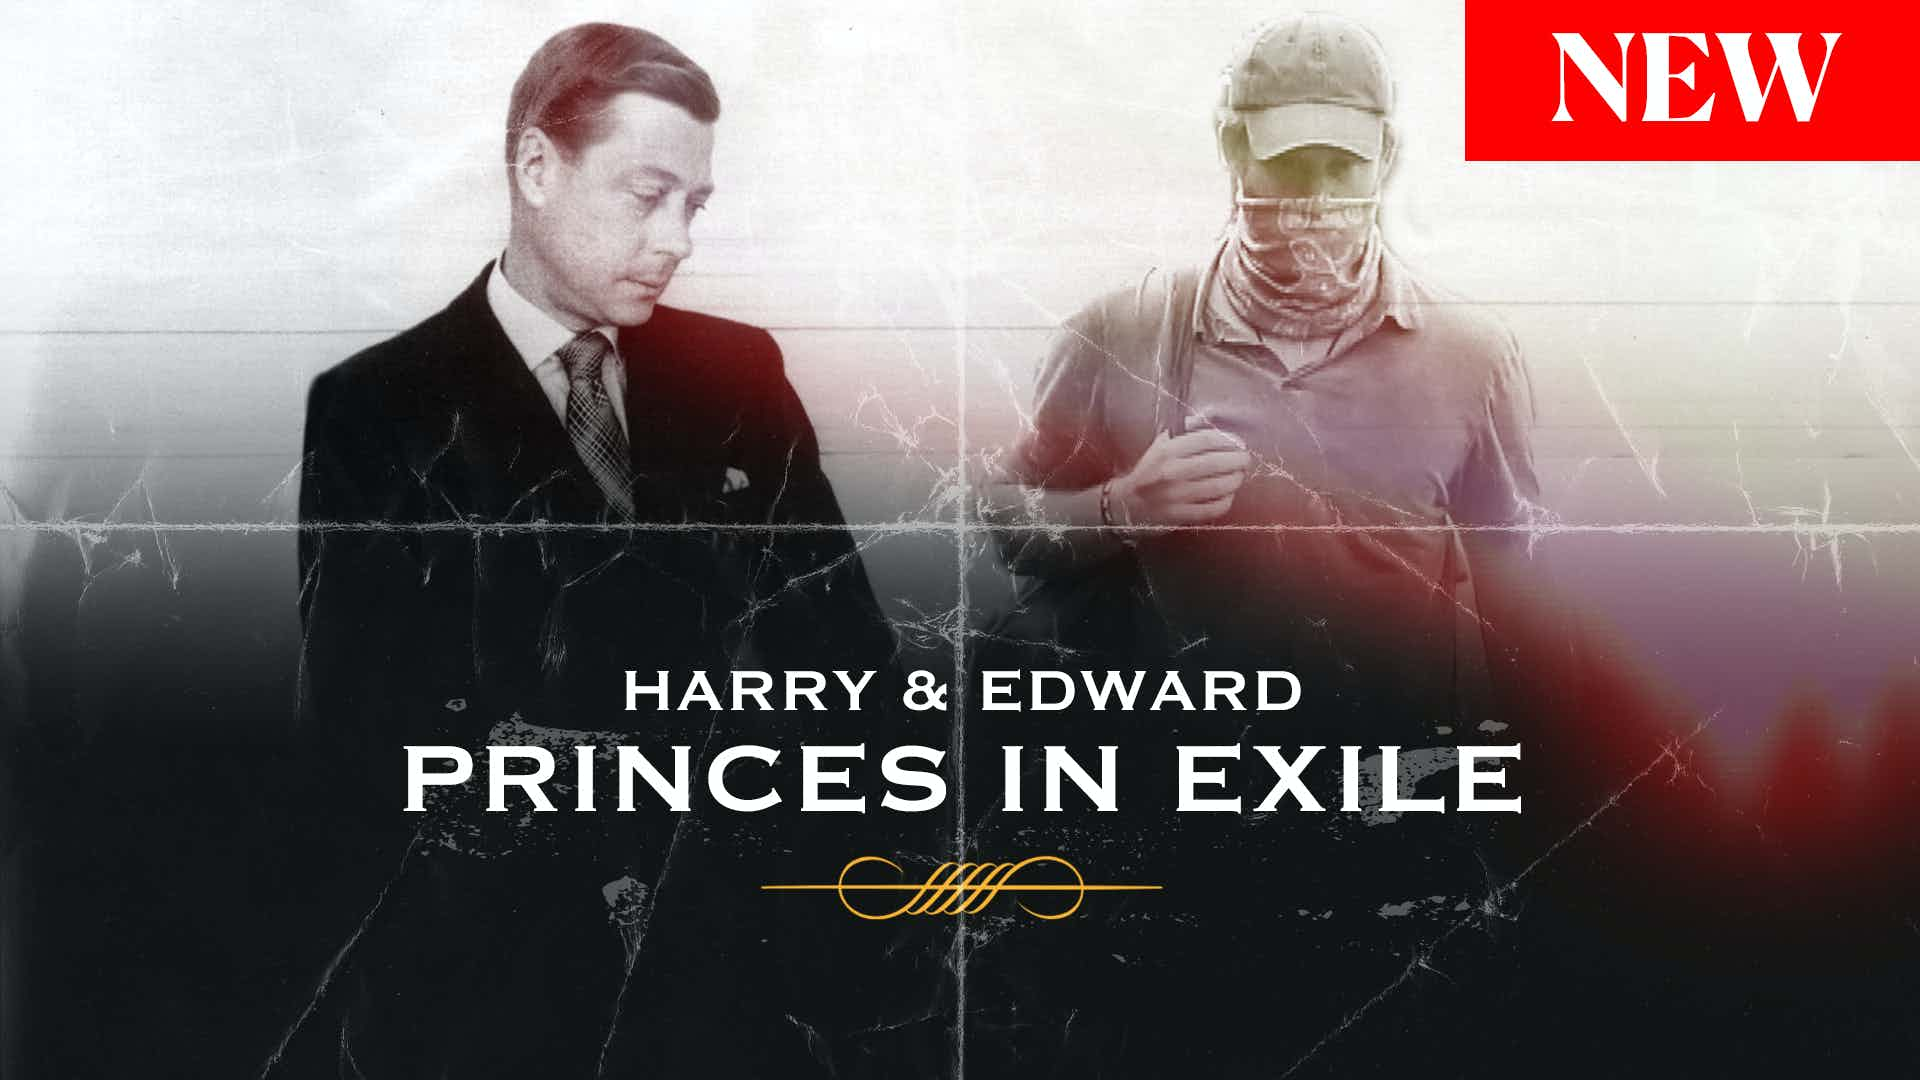 Harry and Edward: Princes in Exile